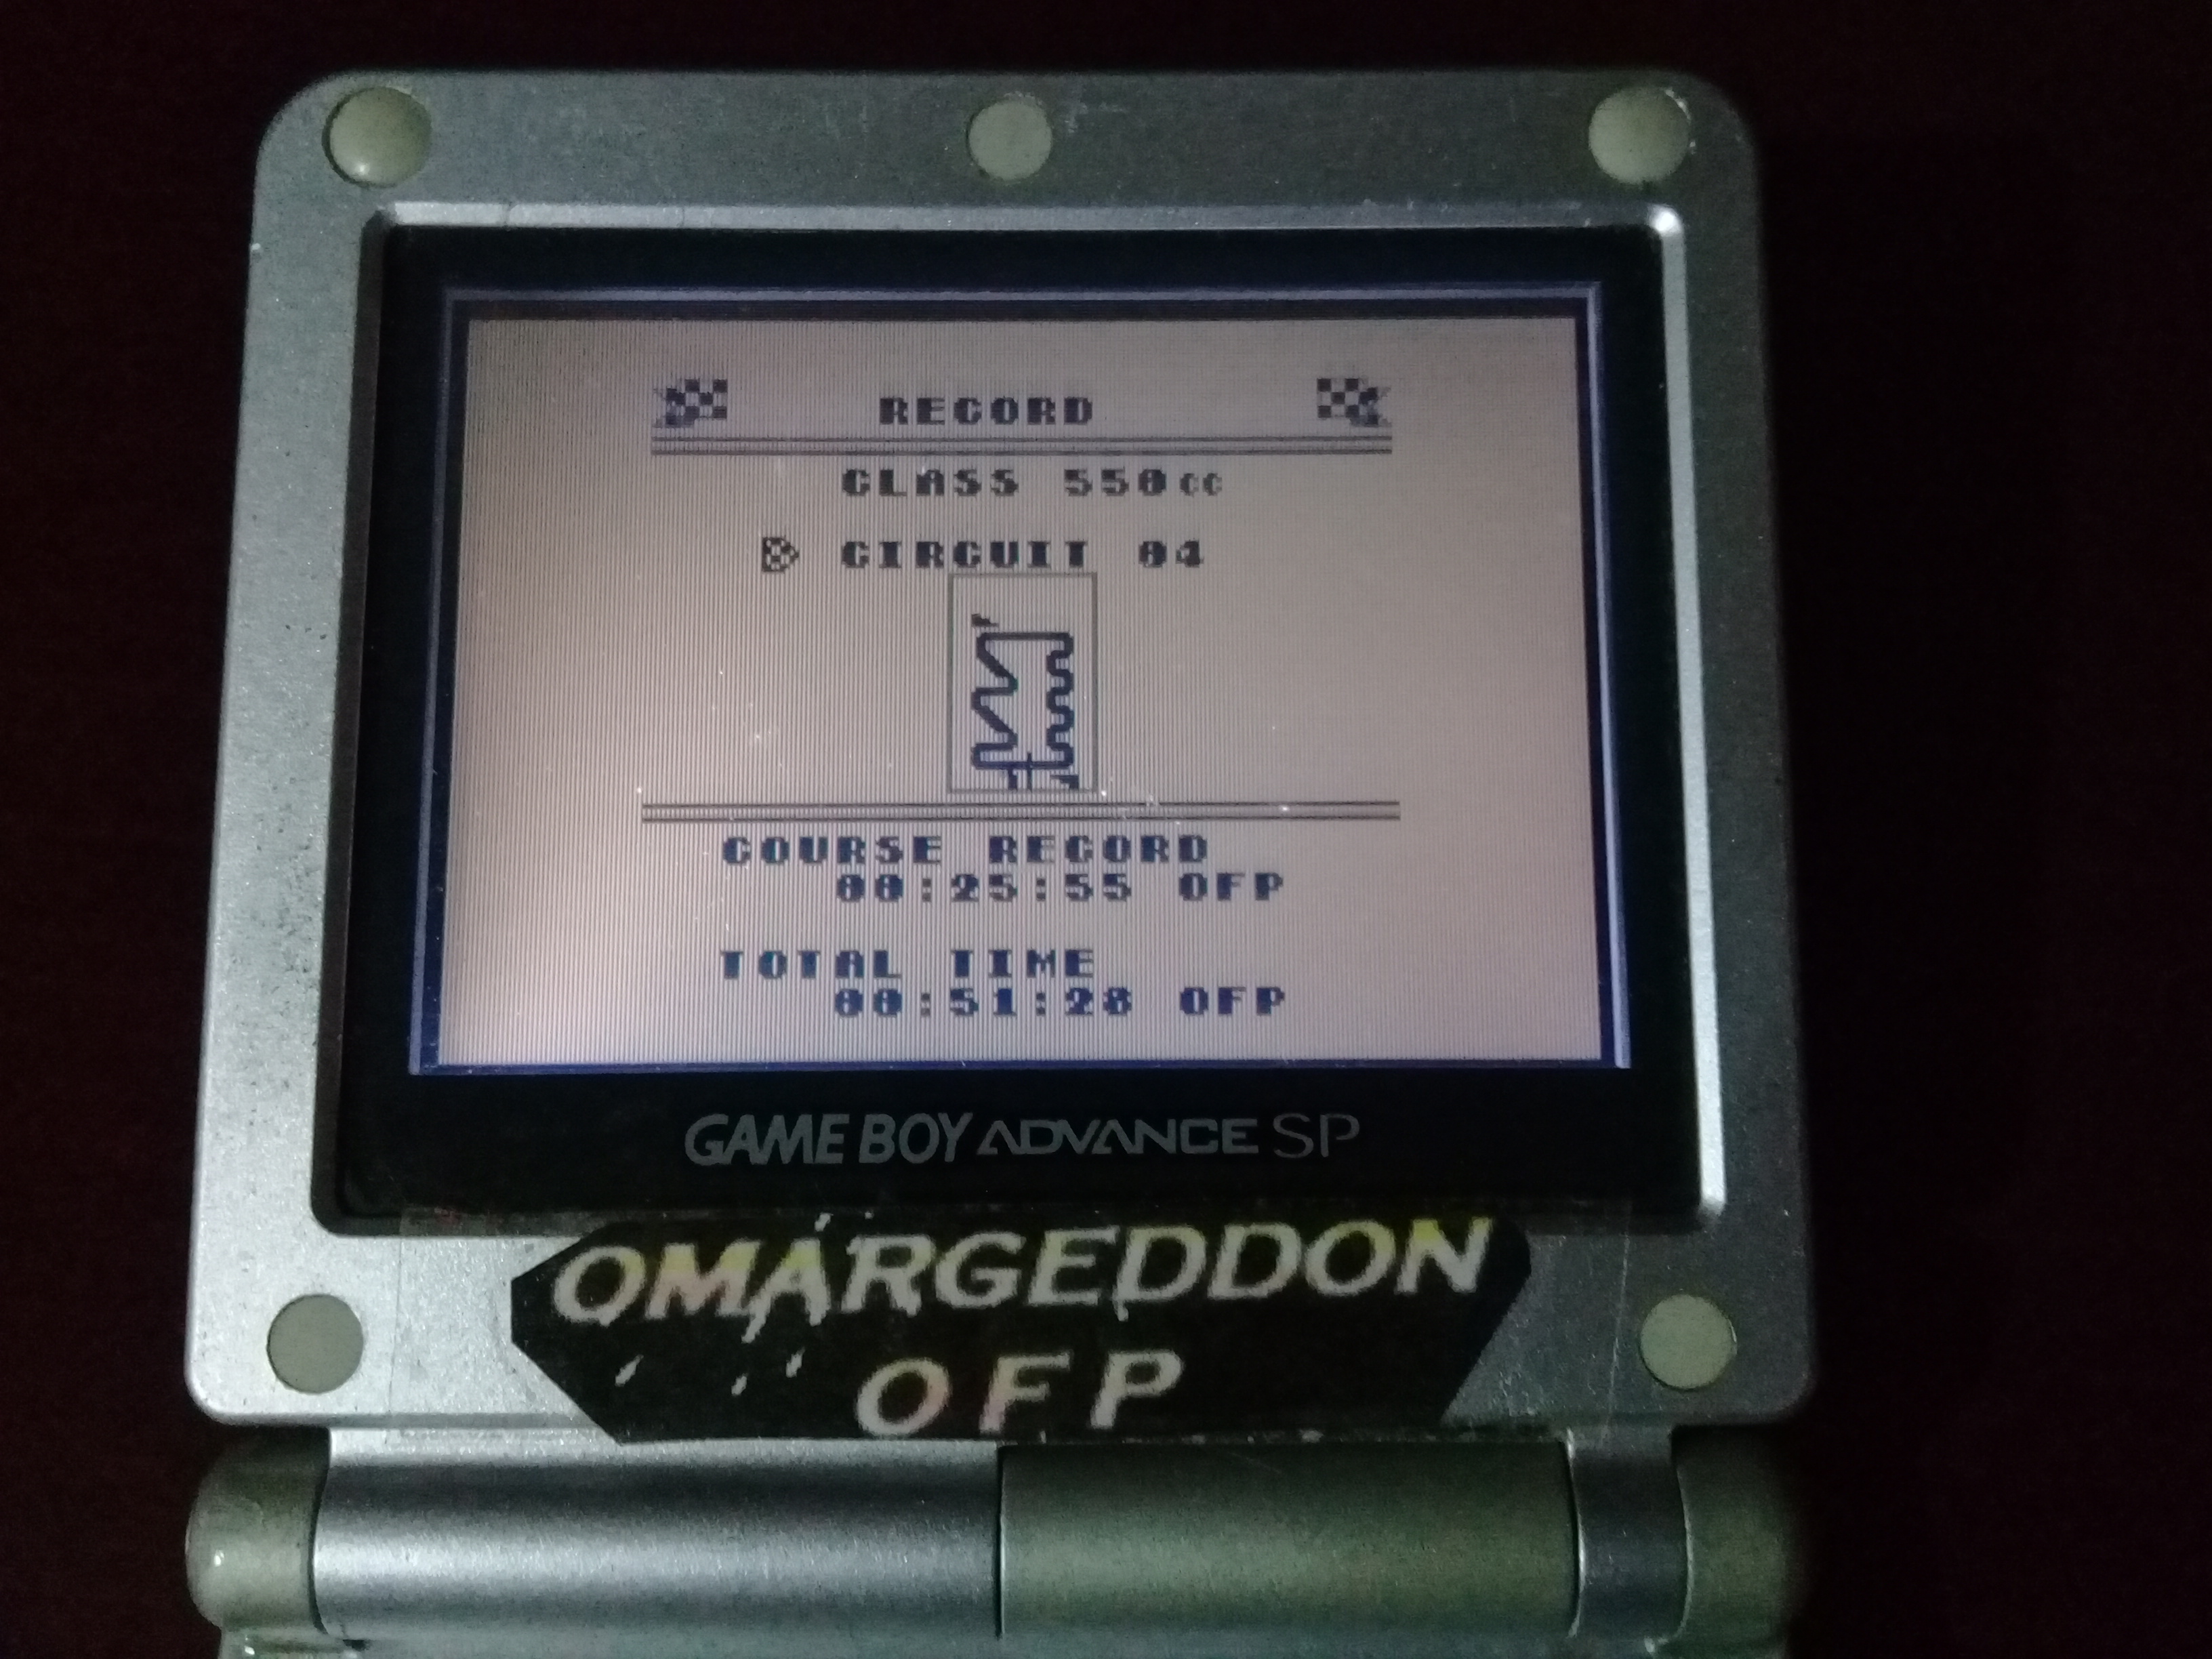 omargeddon: Wave Race: Circuit 4: Rio [550cc][Total Time] (Game Boy) 0:00:51.28 points on 2019-04-16 14:39:46